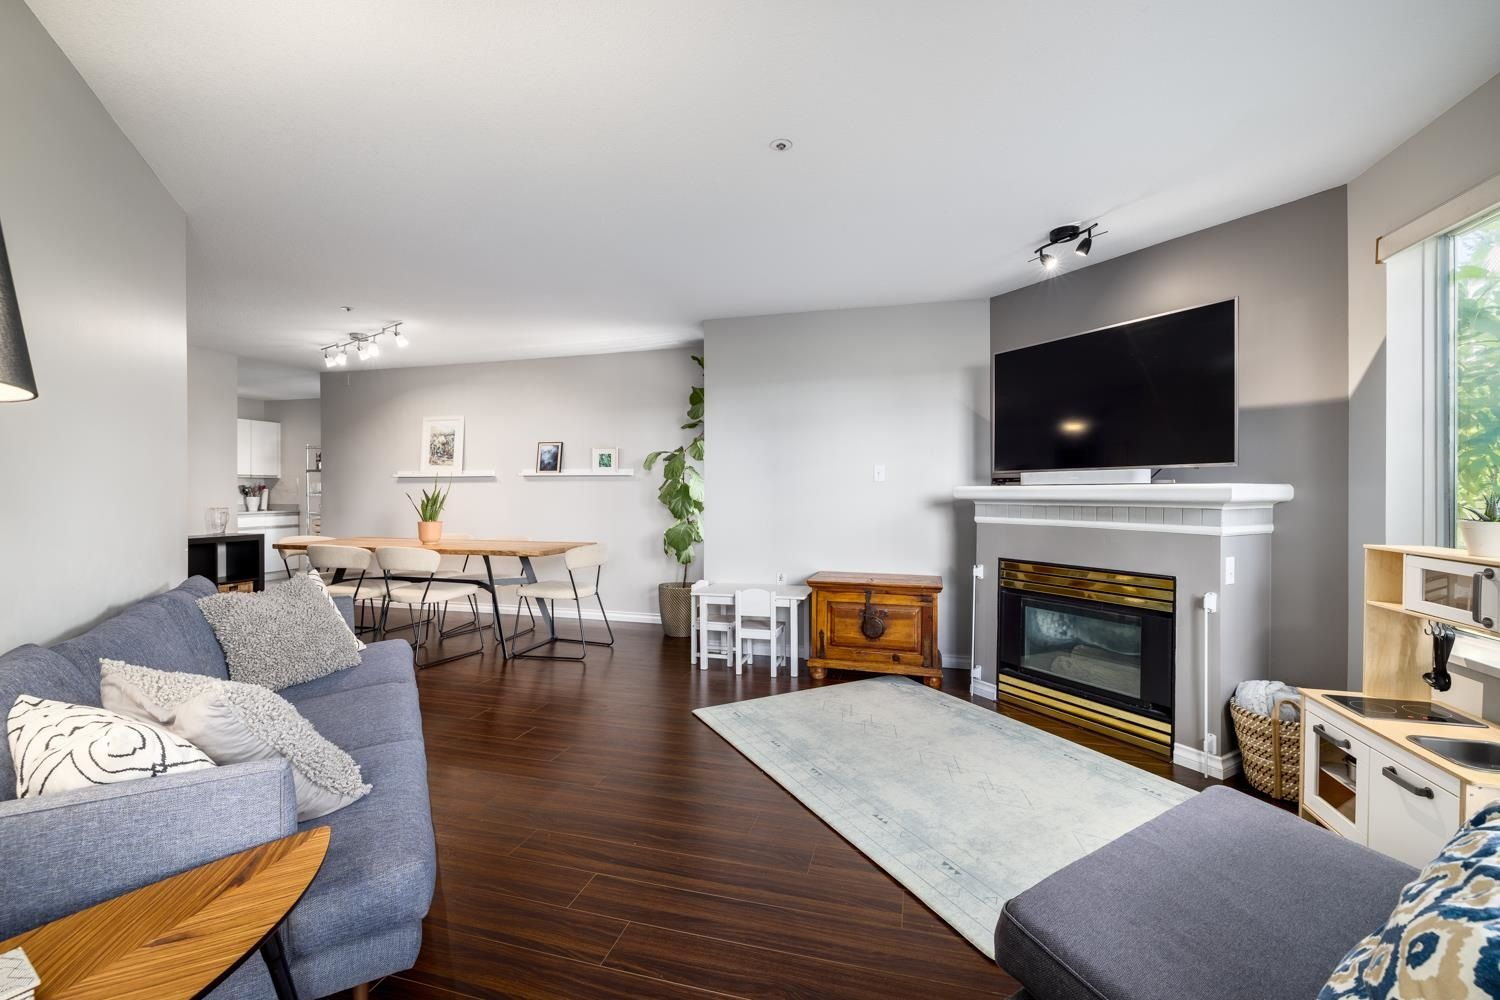 Main Photo: 209 1219 JOHNSON STREET in Coquitlam: Canyon Springs Condo for sale : MLS®# R2606342